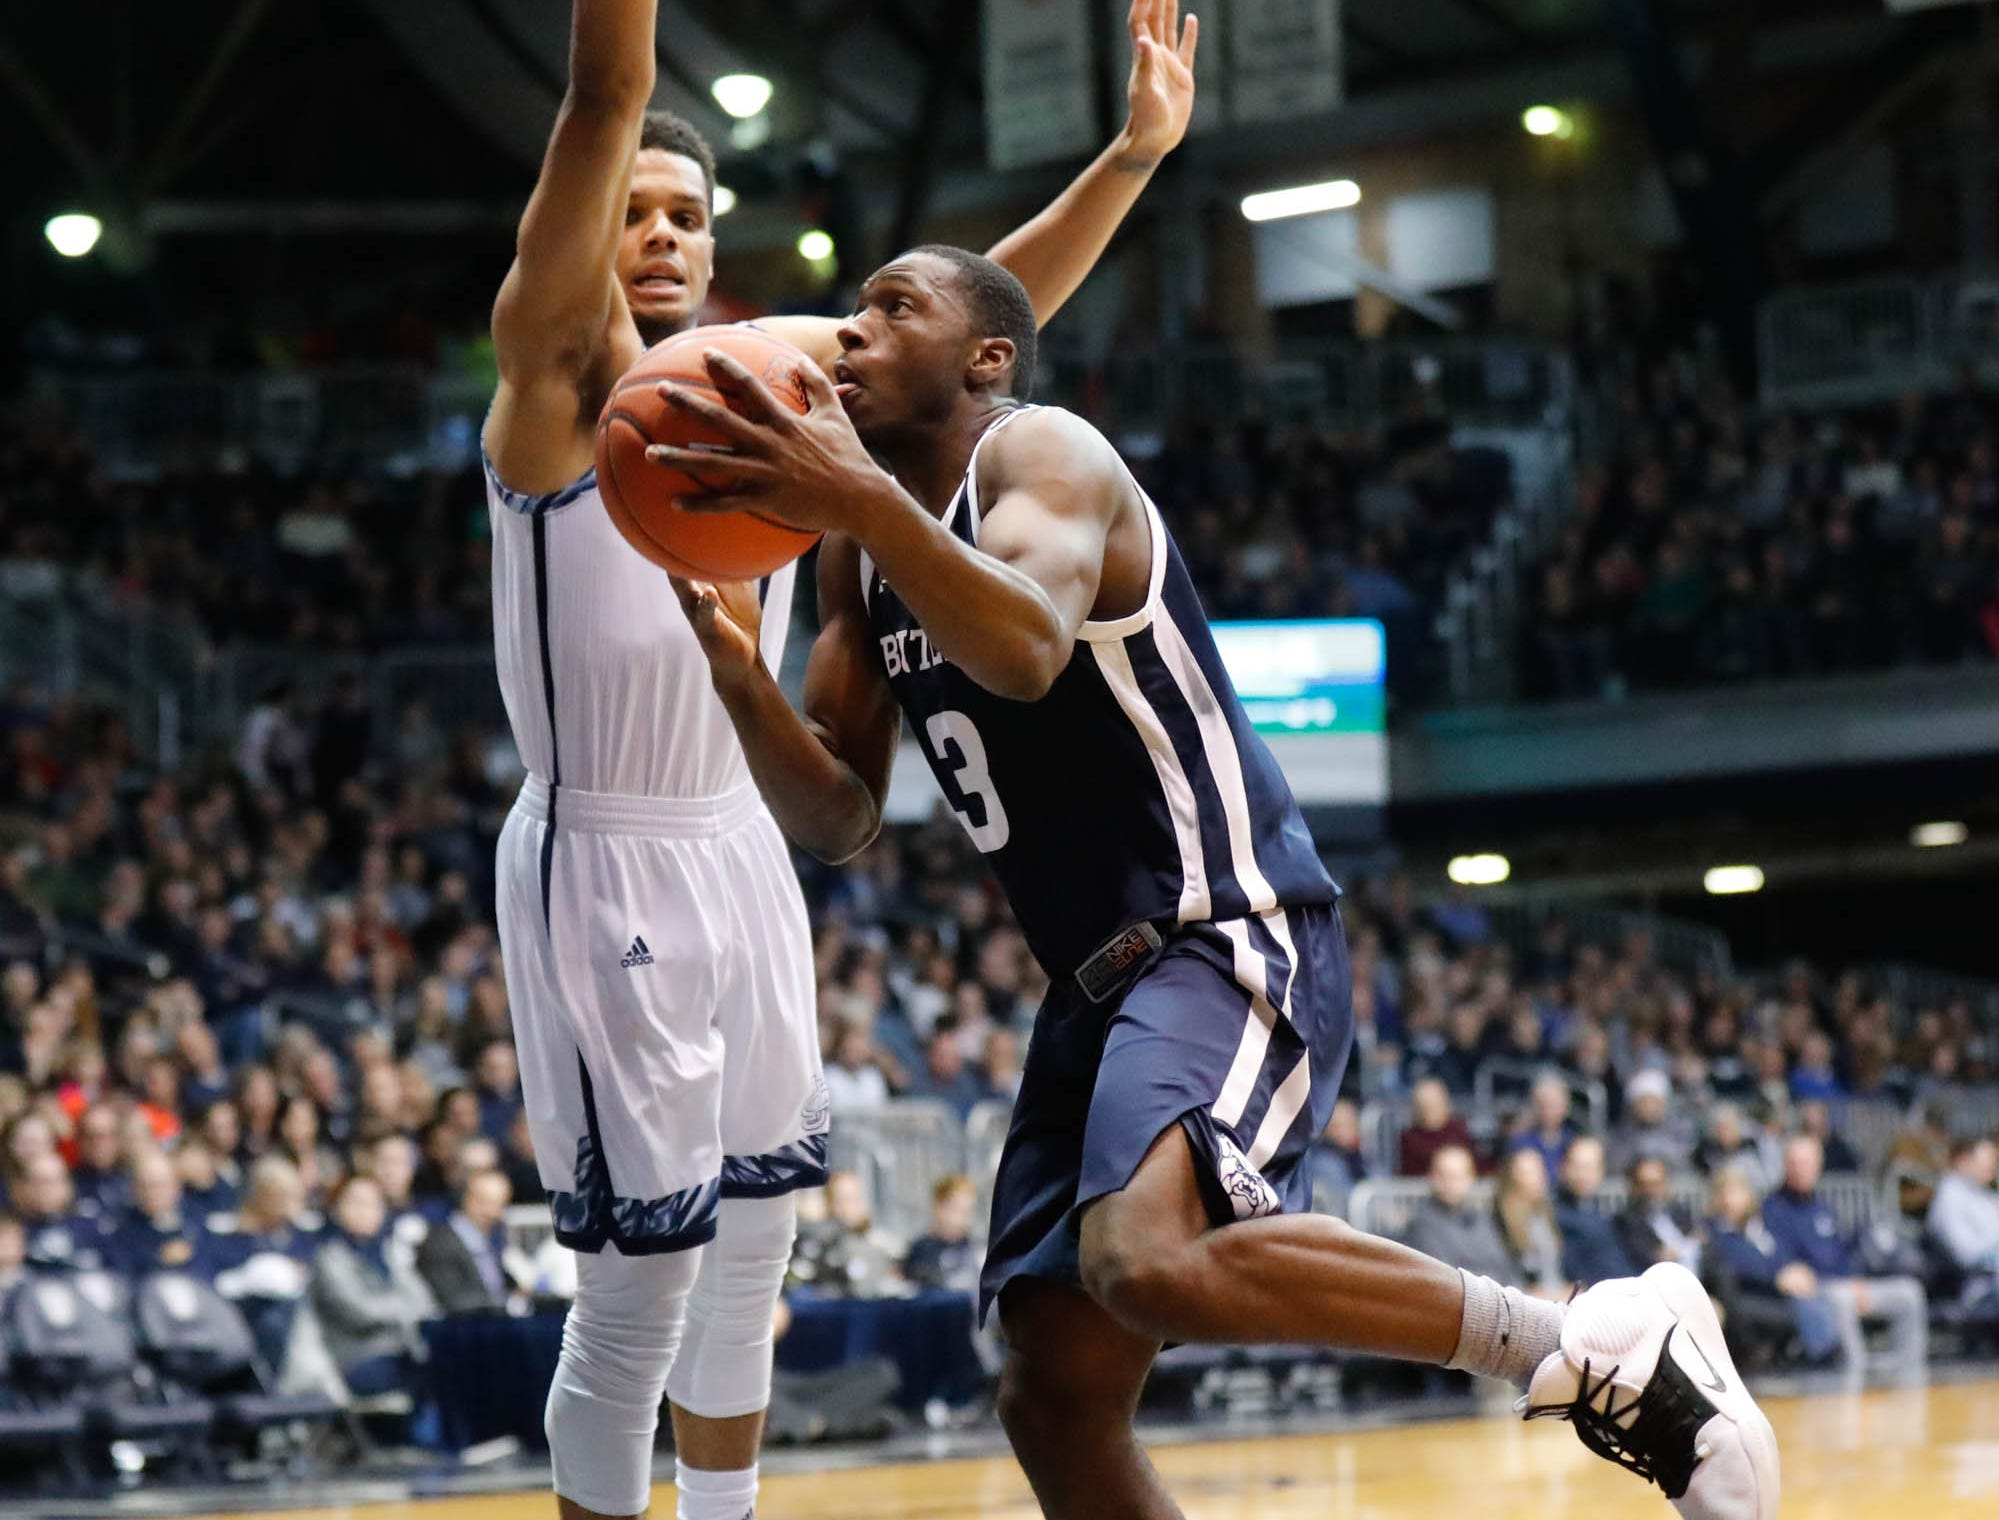 Butler University's guard Kamar Baldwin (3) drives past UC Irvine's guard Evan Leonard (14) for a layup, during a game between Butler University and UC Irvine, at Hinkle Fieldhouse on Friday, Dec. 21, 2018.